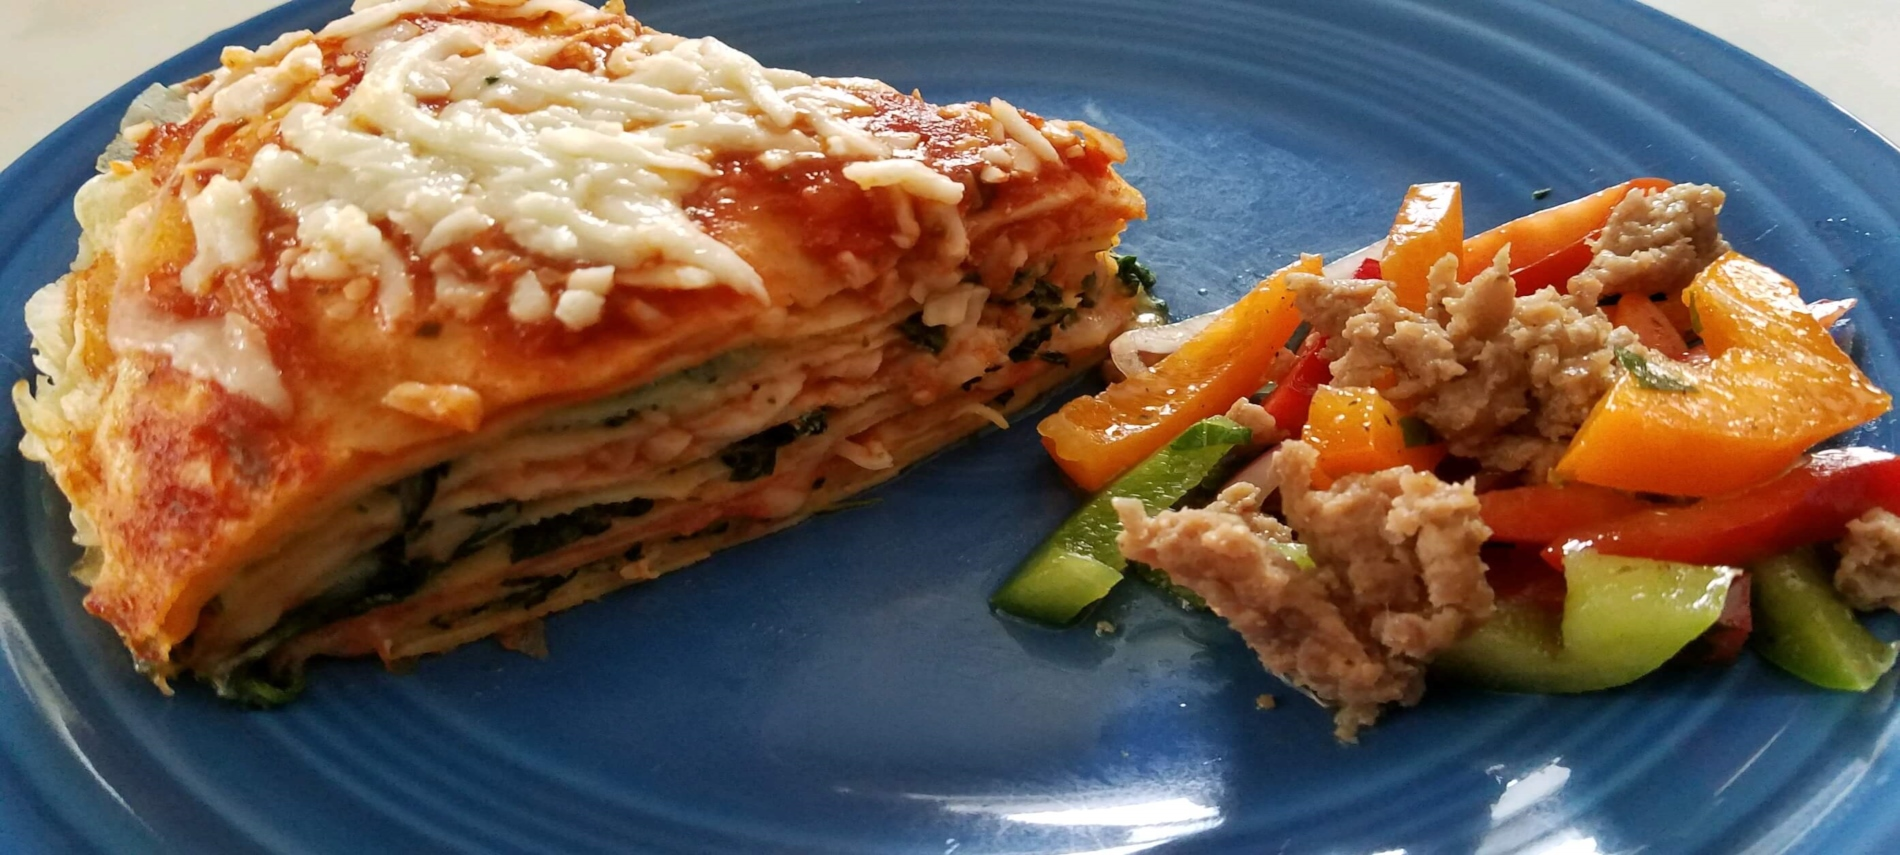 Triangle piece of lasagna on blue plate with red, orange and green pepper and sausage salad